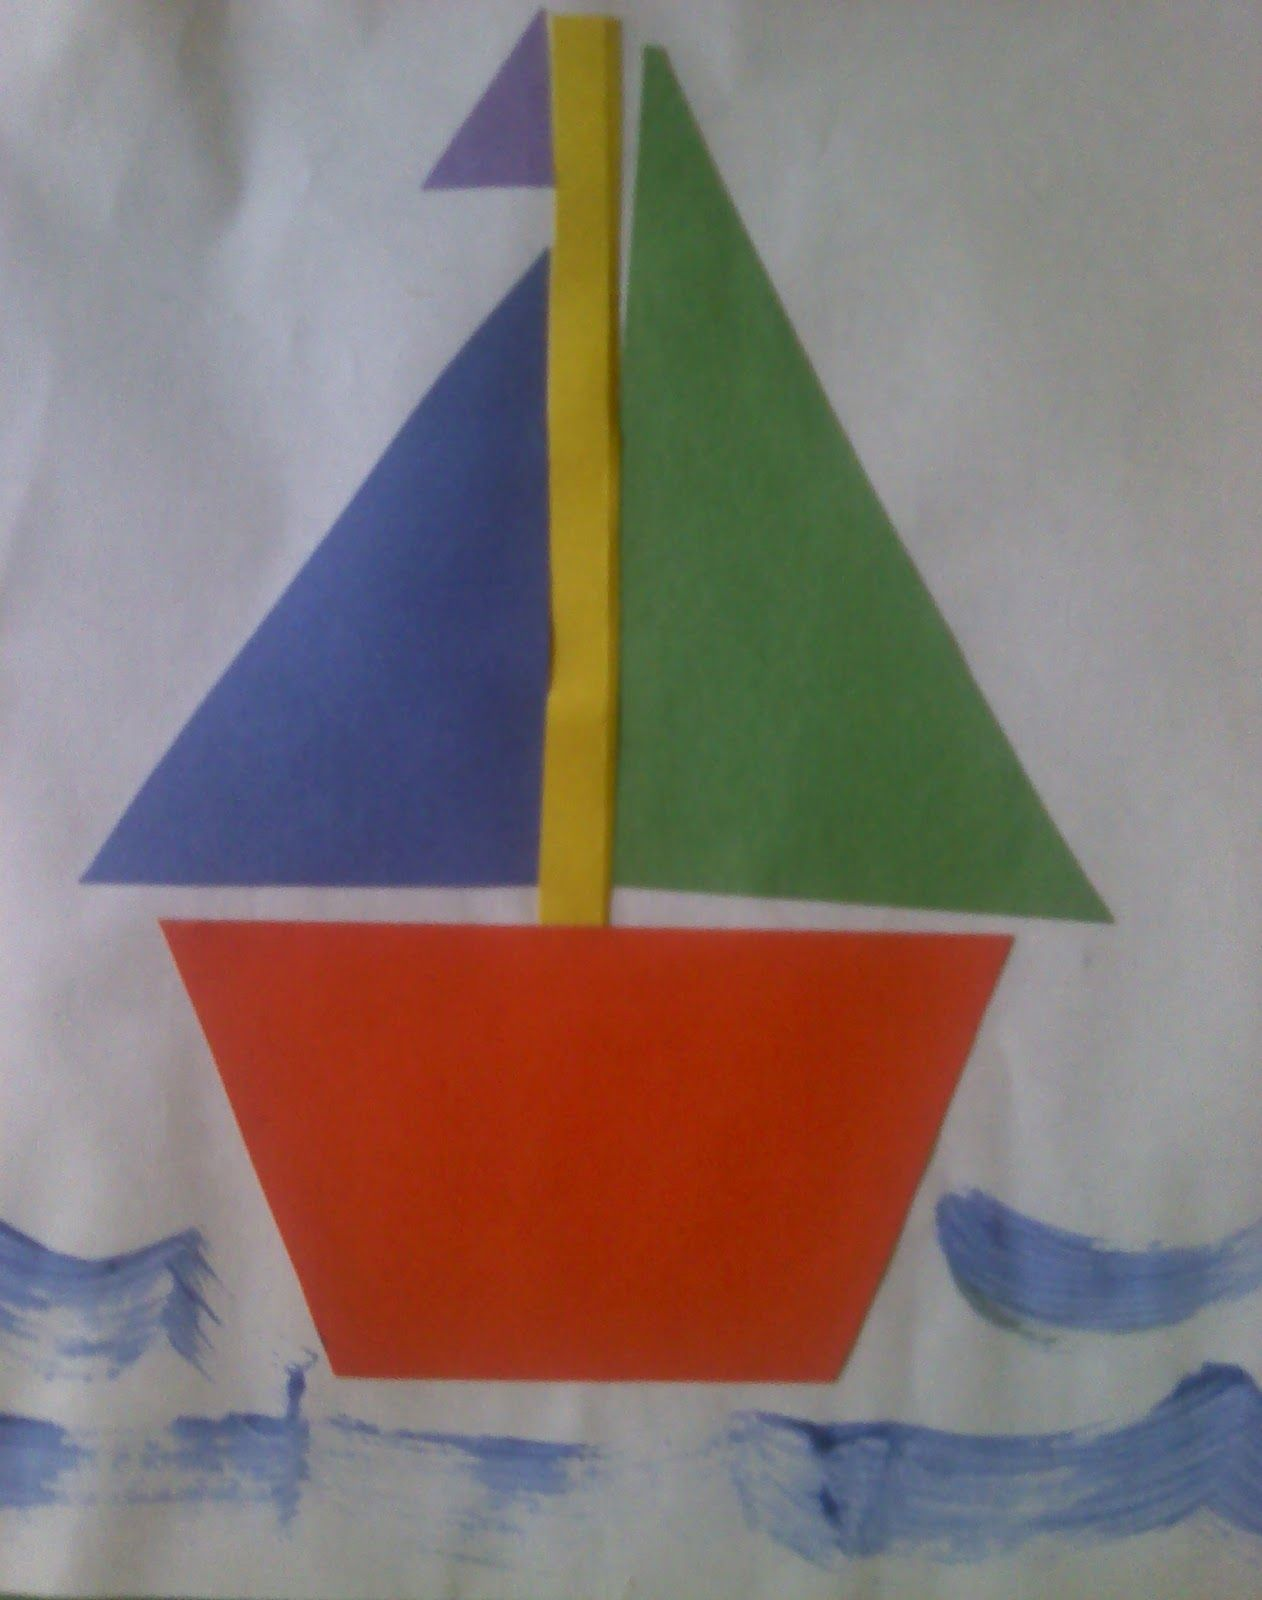 Crafts For Preschoolers: Shape Sailboat! | Things I love | Pinterest ...